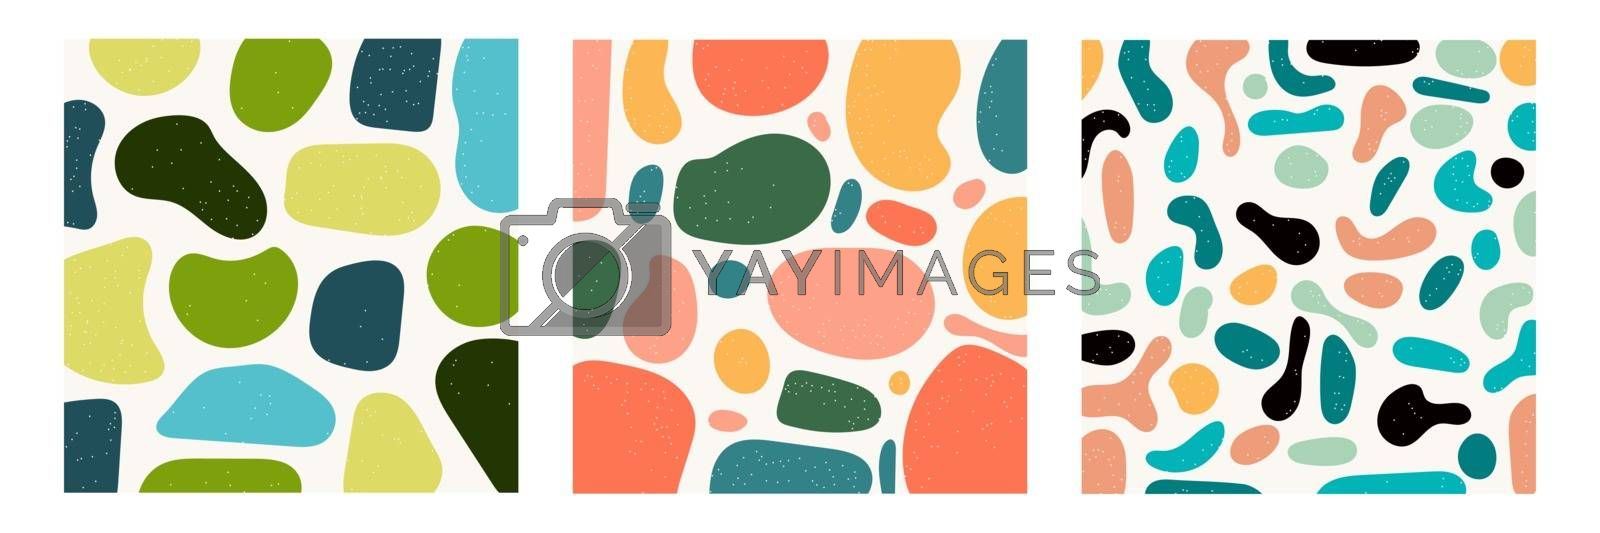 Set of hand draw various shapes and abstract contemporary modern trendy objects pattern background. Vector illustration